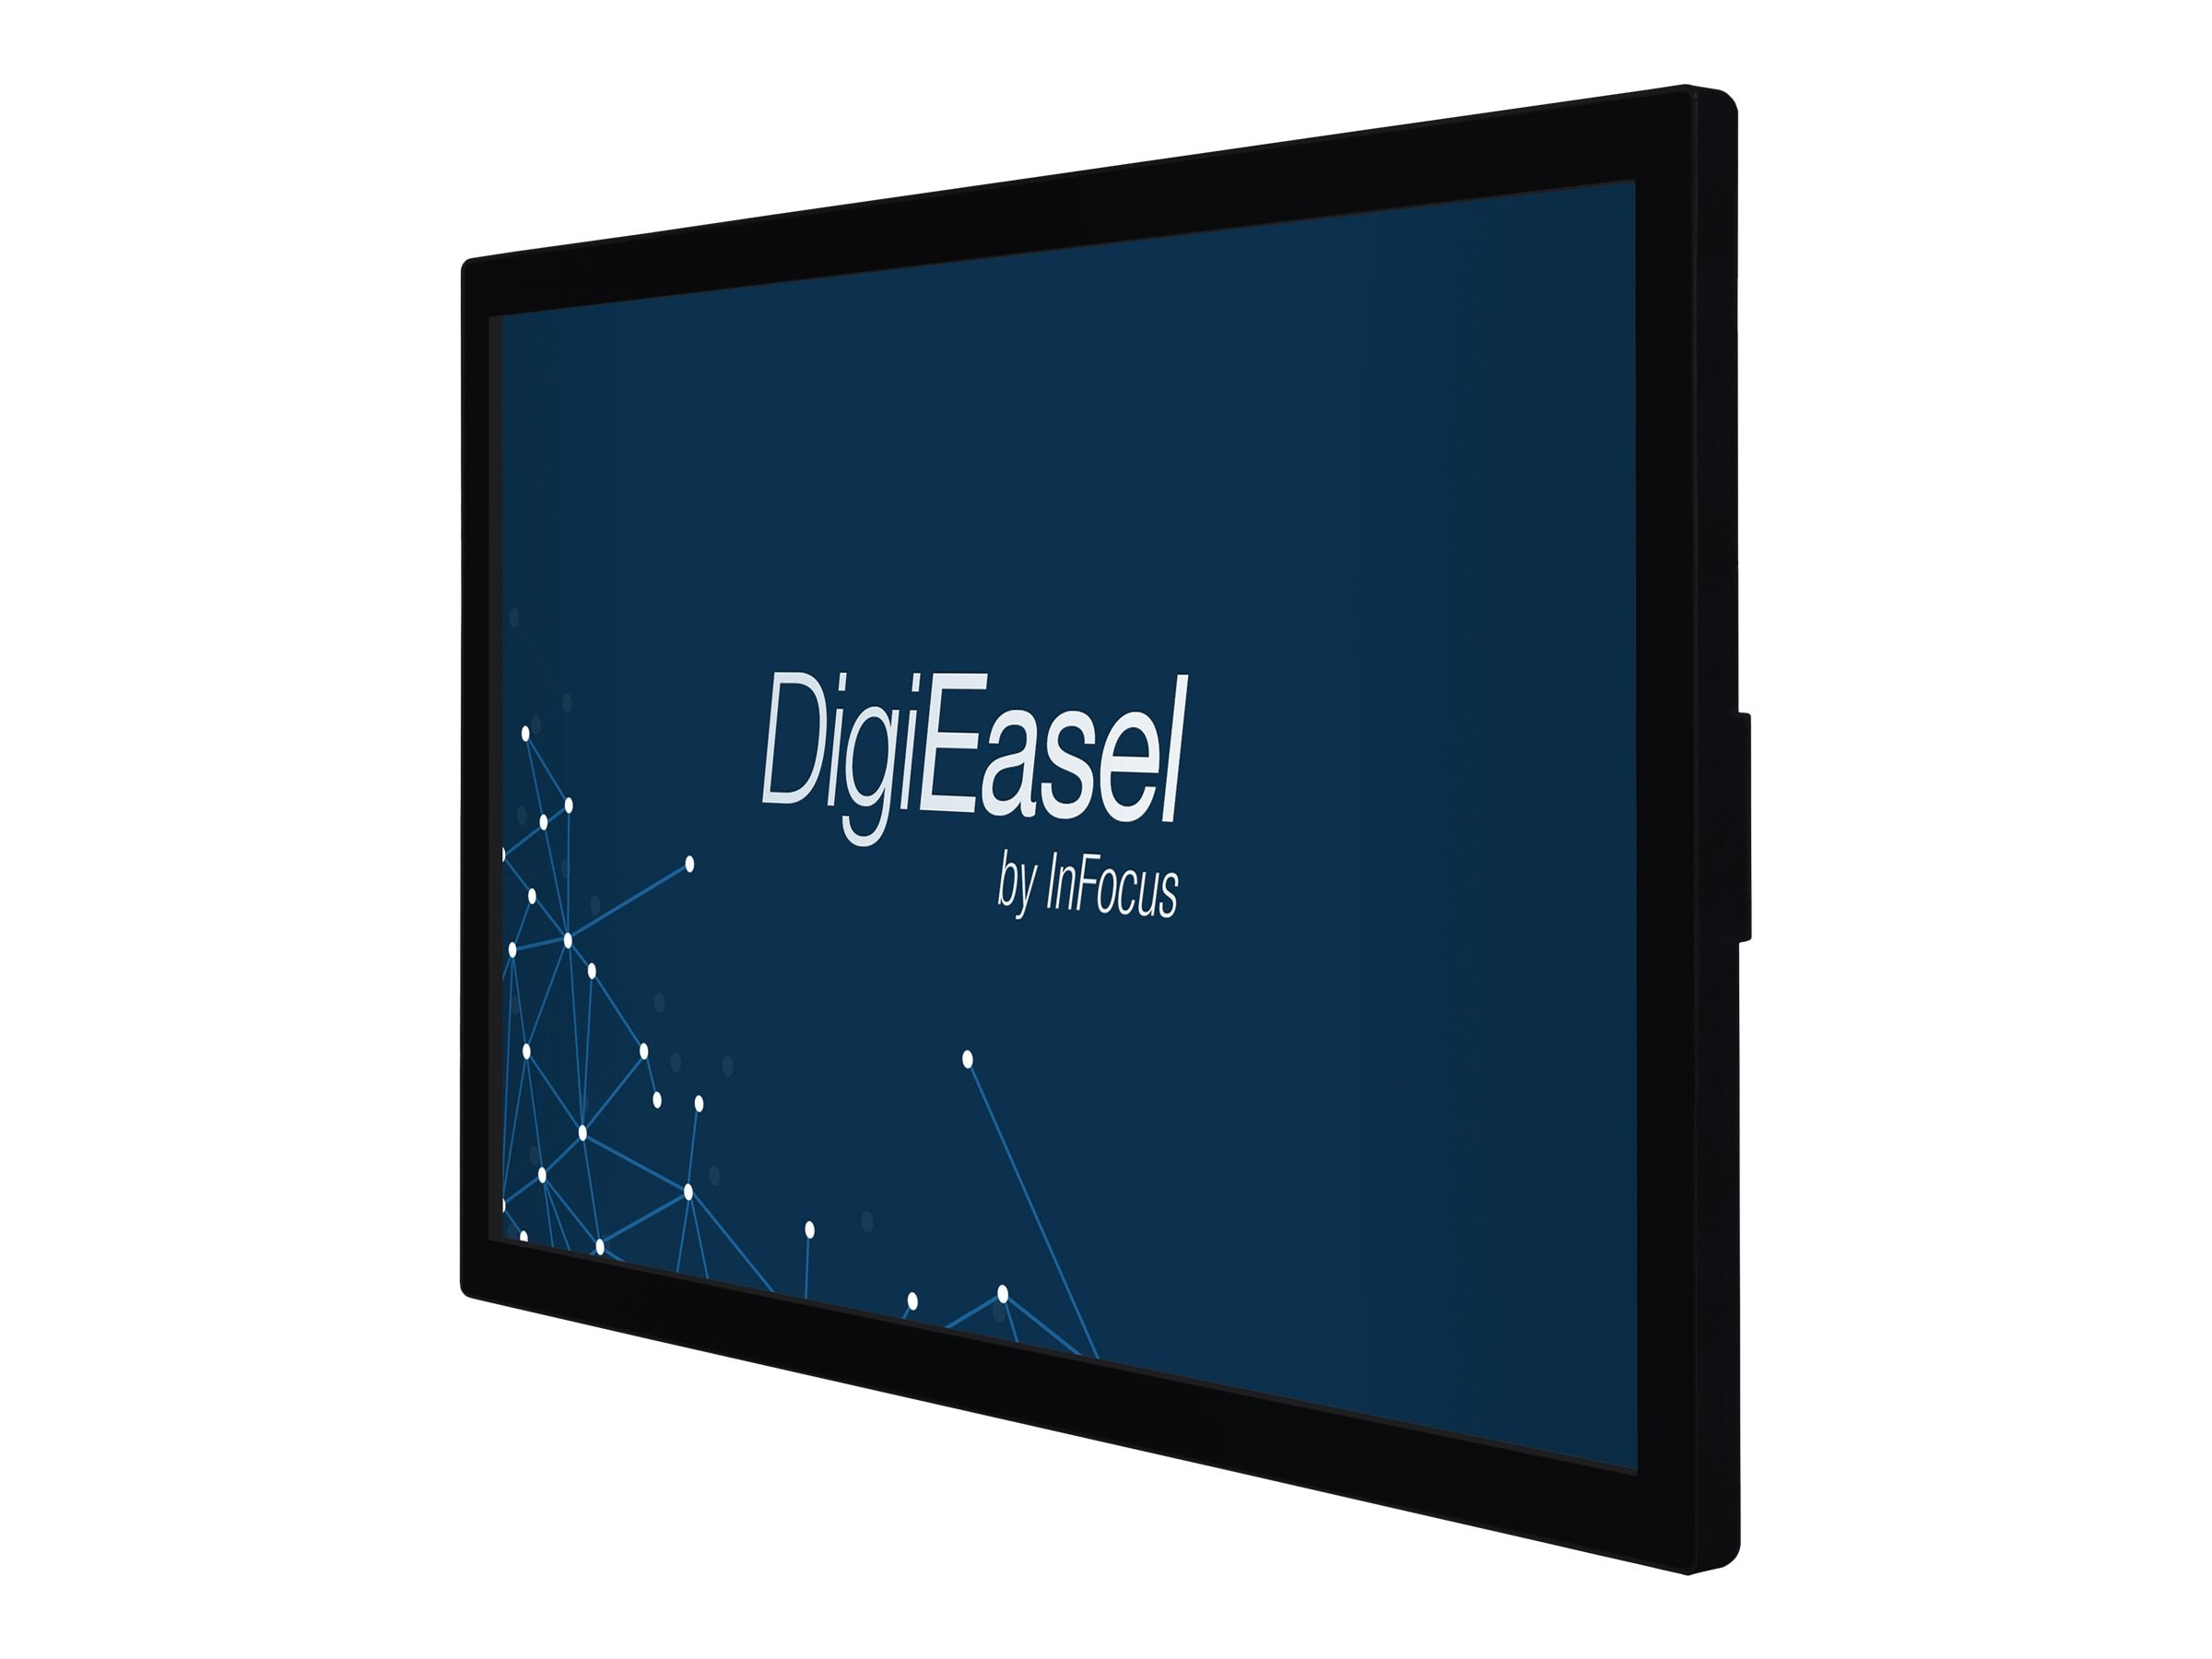 InFocus 40 JTouch DigiEasel Full HD LED-LCD Interactive Whiteboard Display with Wireless Collaboration, INF4030CBP